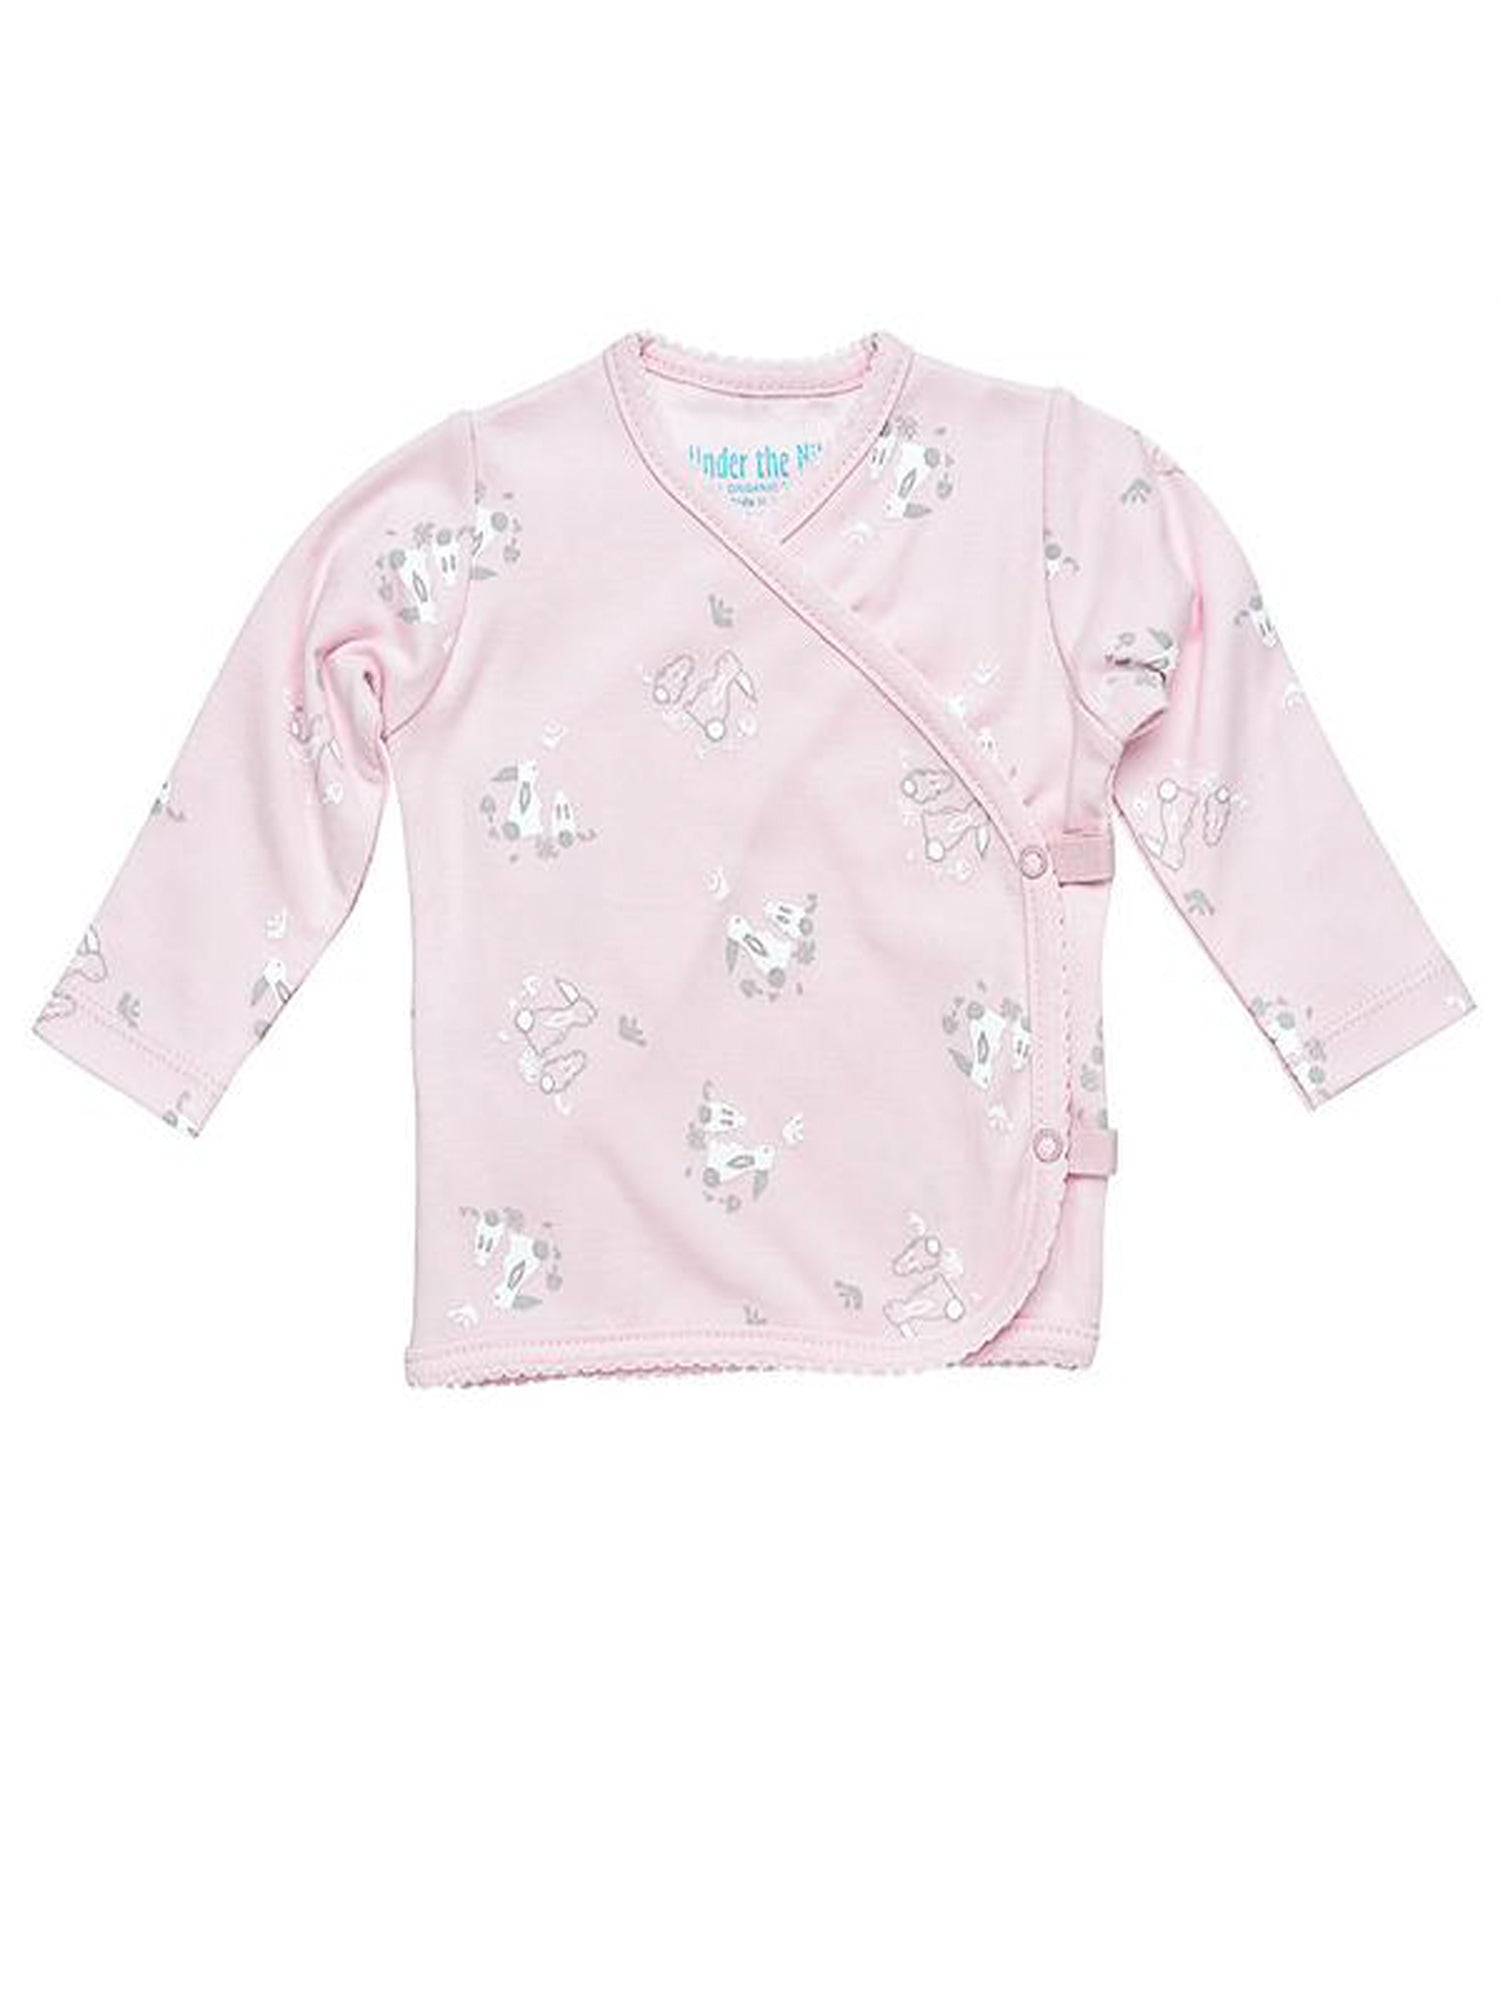 Long Sleeve Side Snap T-Shirt - Pink Bunny Print